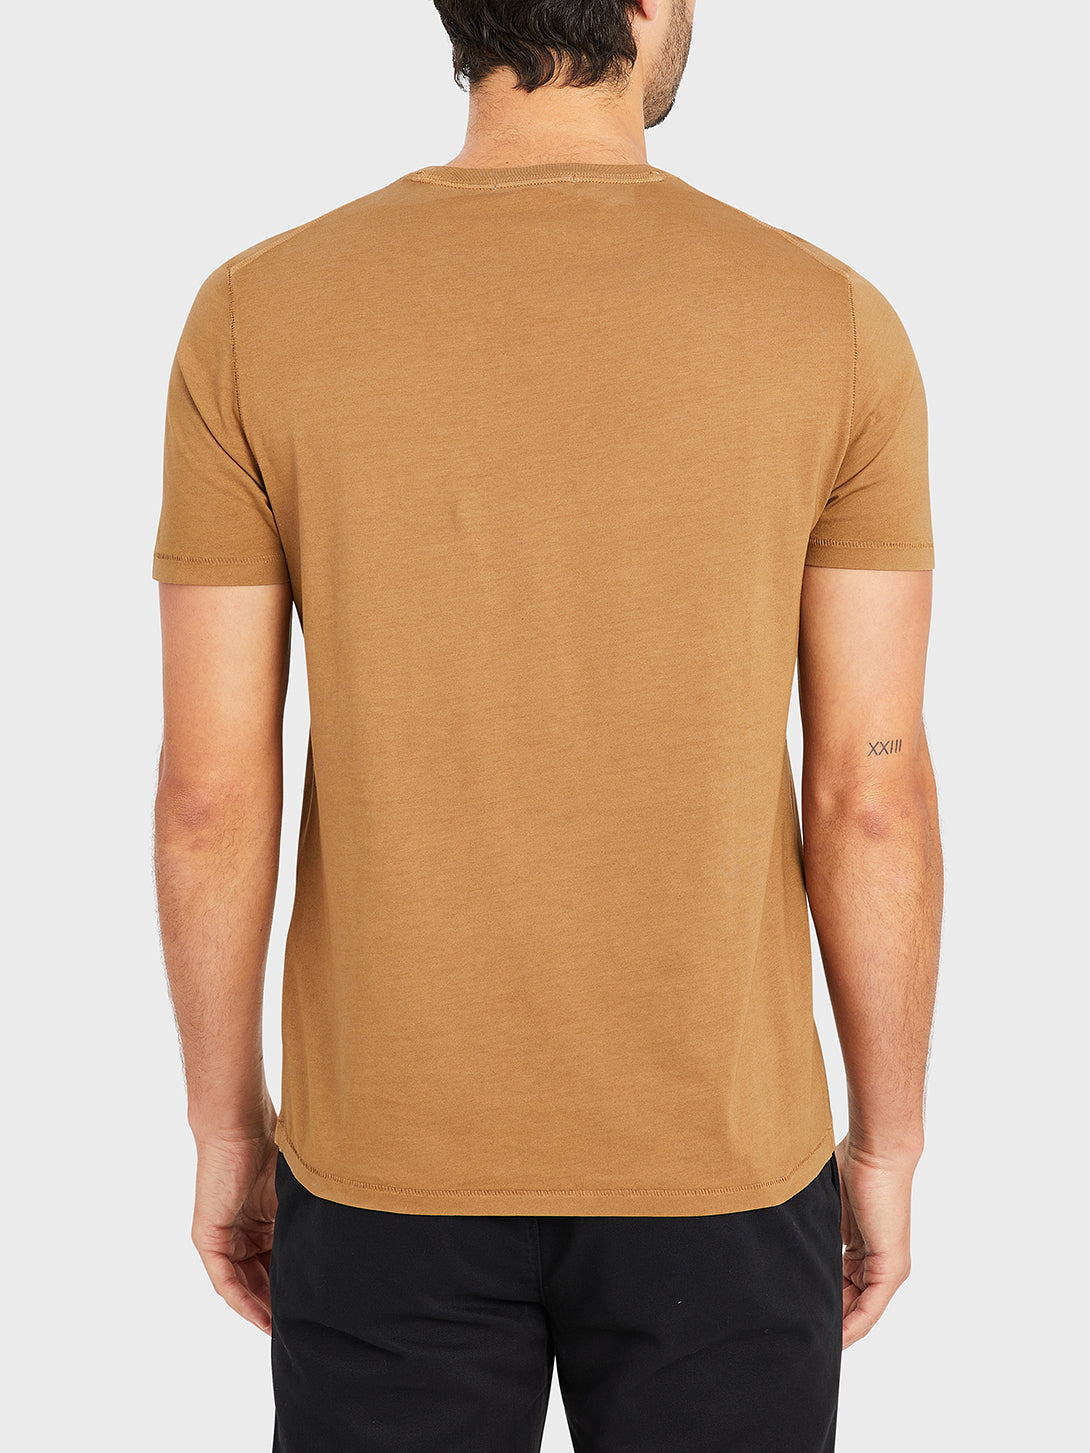 ONS VILLAGE CREW NECK TEE COFFEE 100% Supima Cotton, Pre-shrunk cotton